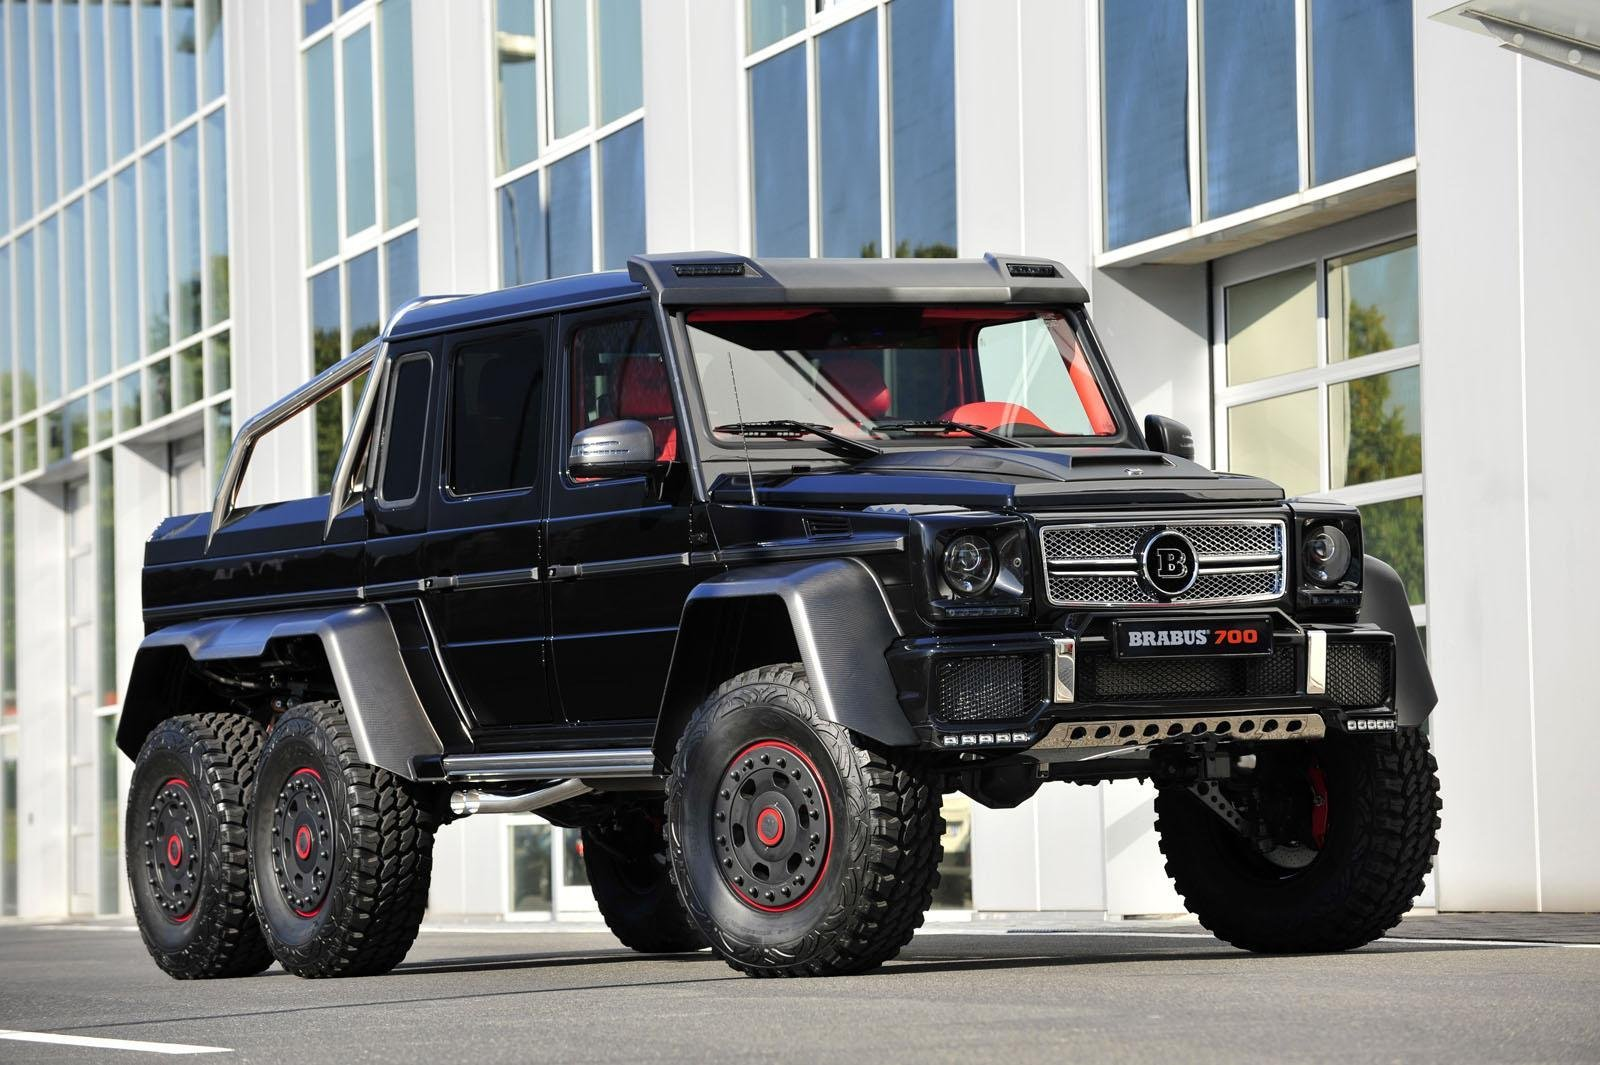 2013 mercedes benz g63 amg 6x6 b63s 700 by brabus for Mercedes benz g63 amg 6x6 price